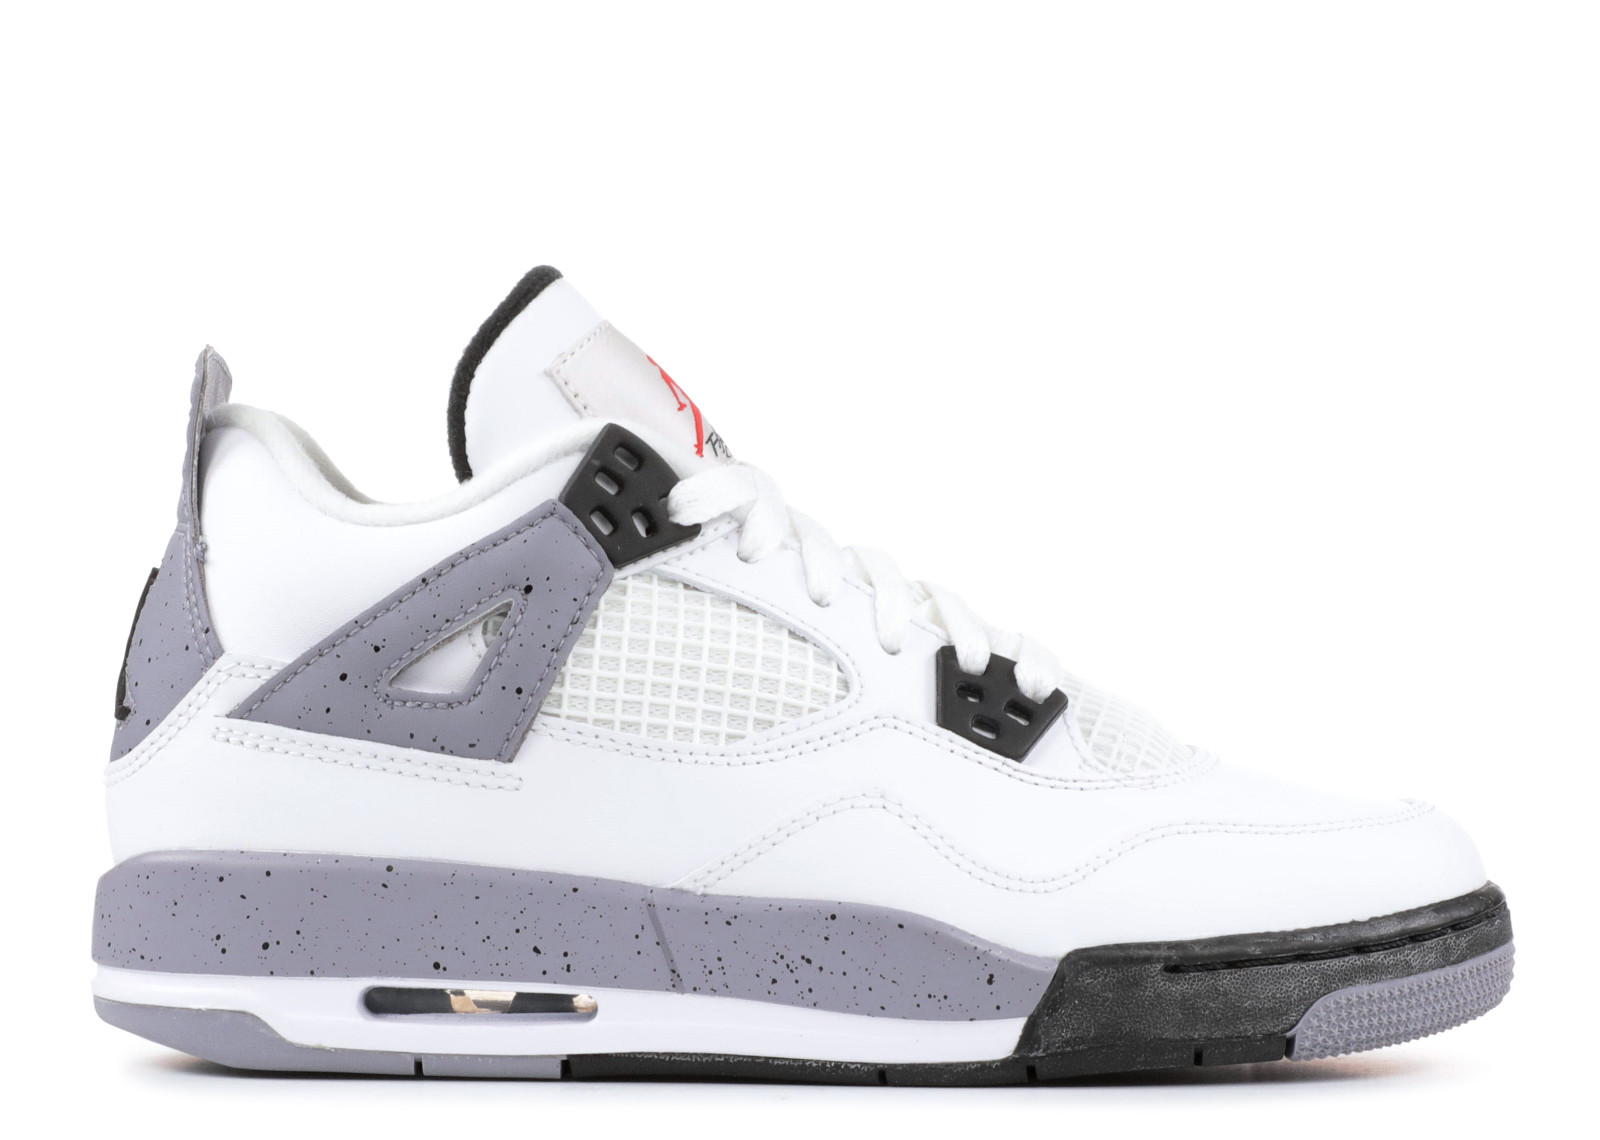 e4f822ee1613df official review of the 1999 2012 2016 nike air jordan 4 retro white cement  sneakers 95218 fbeac  czech jordan 4 retro white cement 2012 gs d8619 e1947